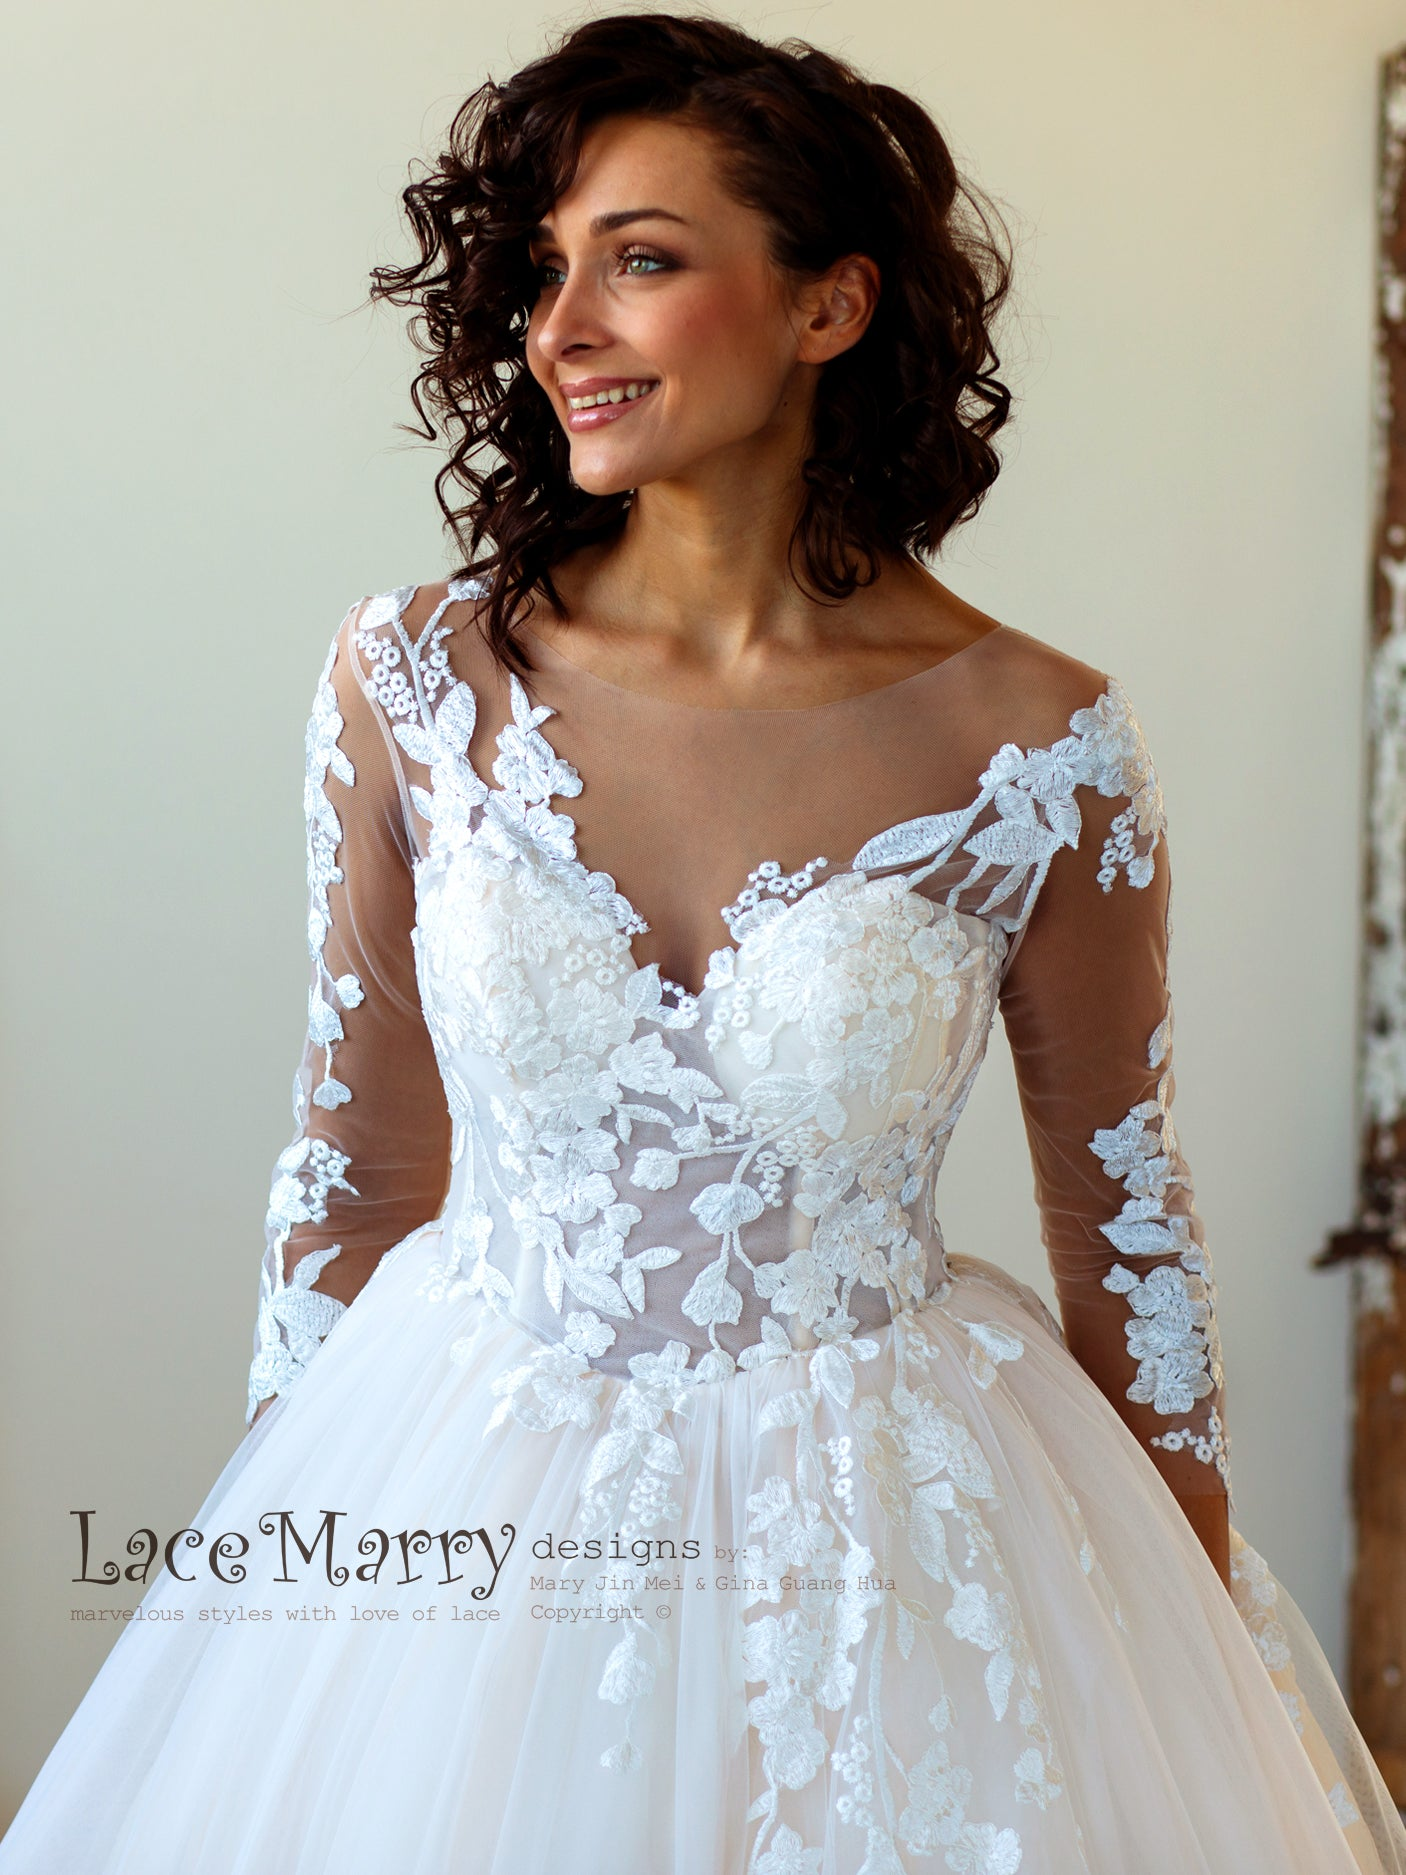 Champagne Boho Wedding Dress with Floral Lace Applique   LaceMarry